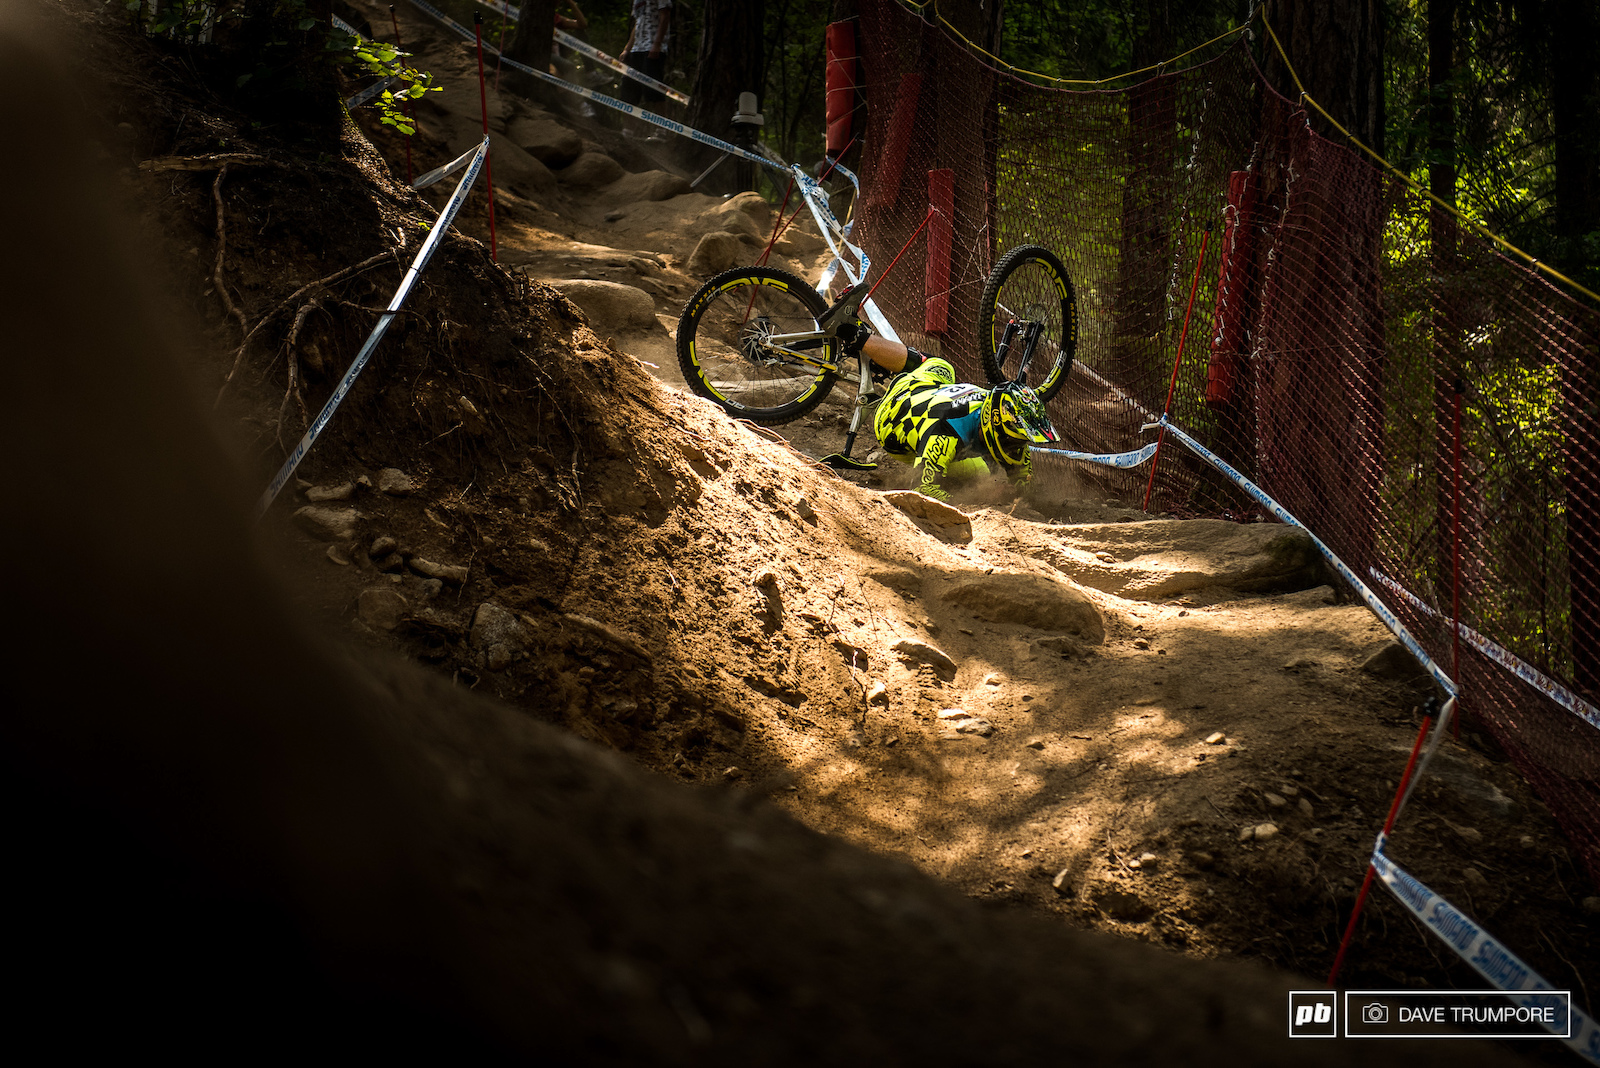 Dean Lucas had top 10 splits the whole way down until he put his front wheel in the wrong spot in the final steep chute.